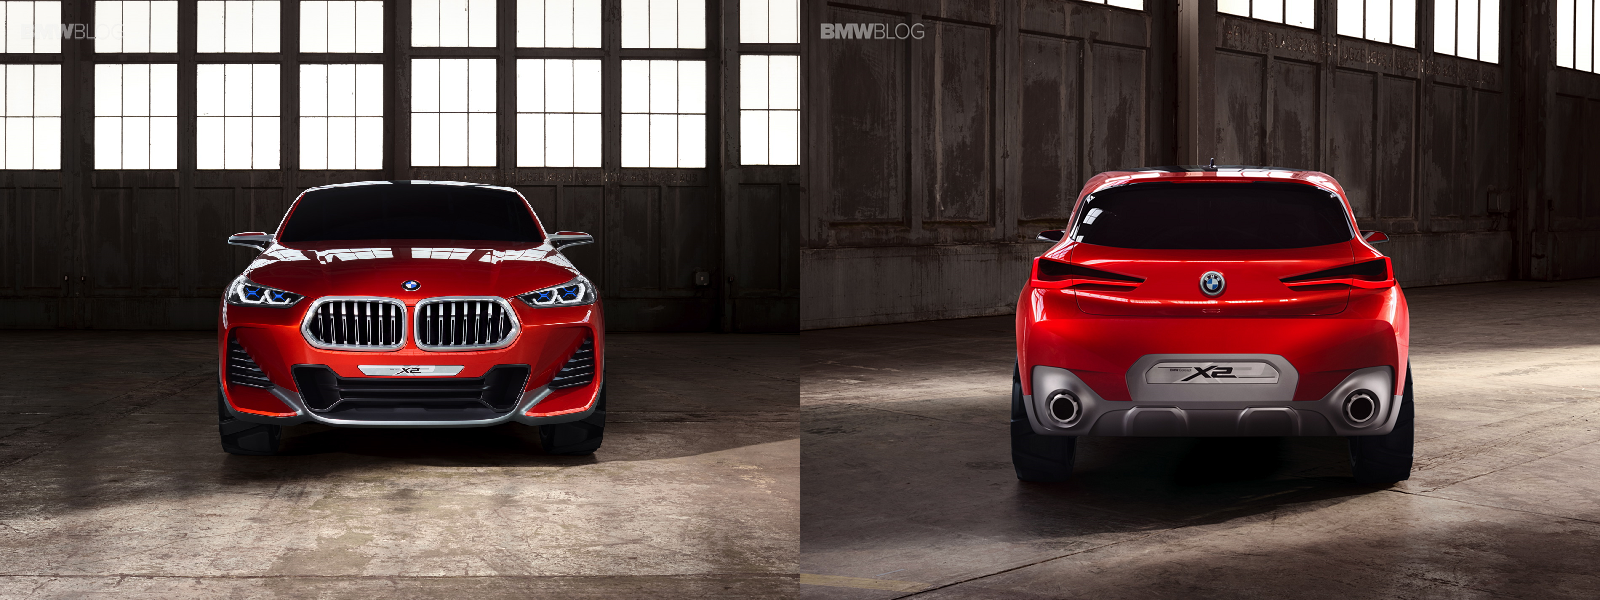 bmw-x2-concept-front-rear